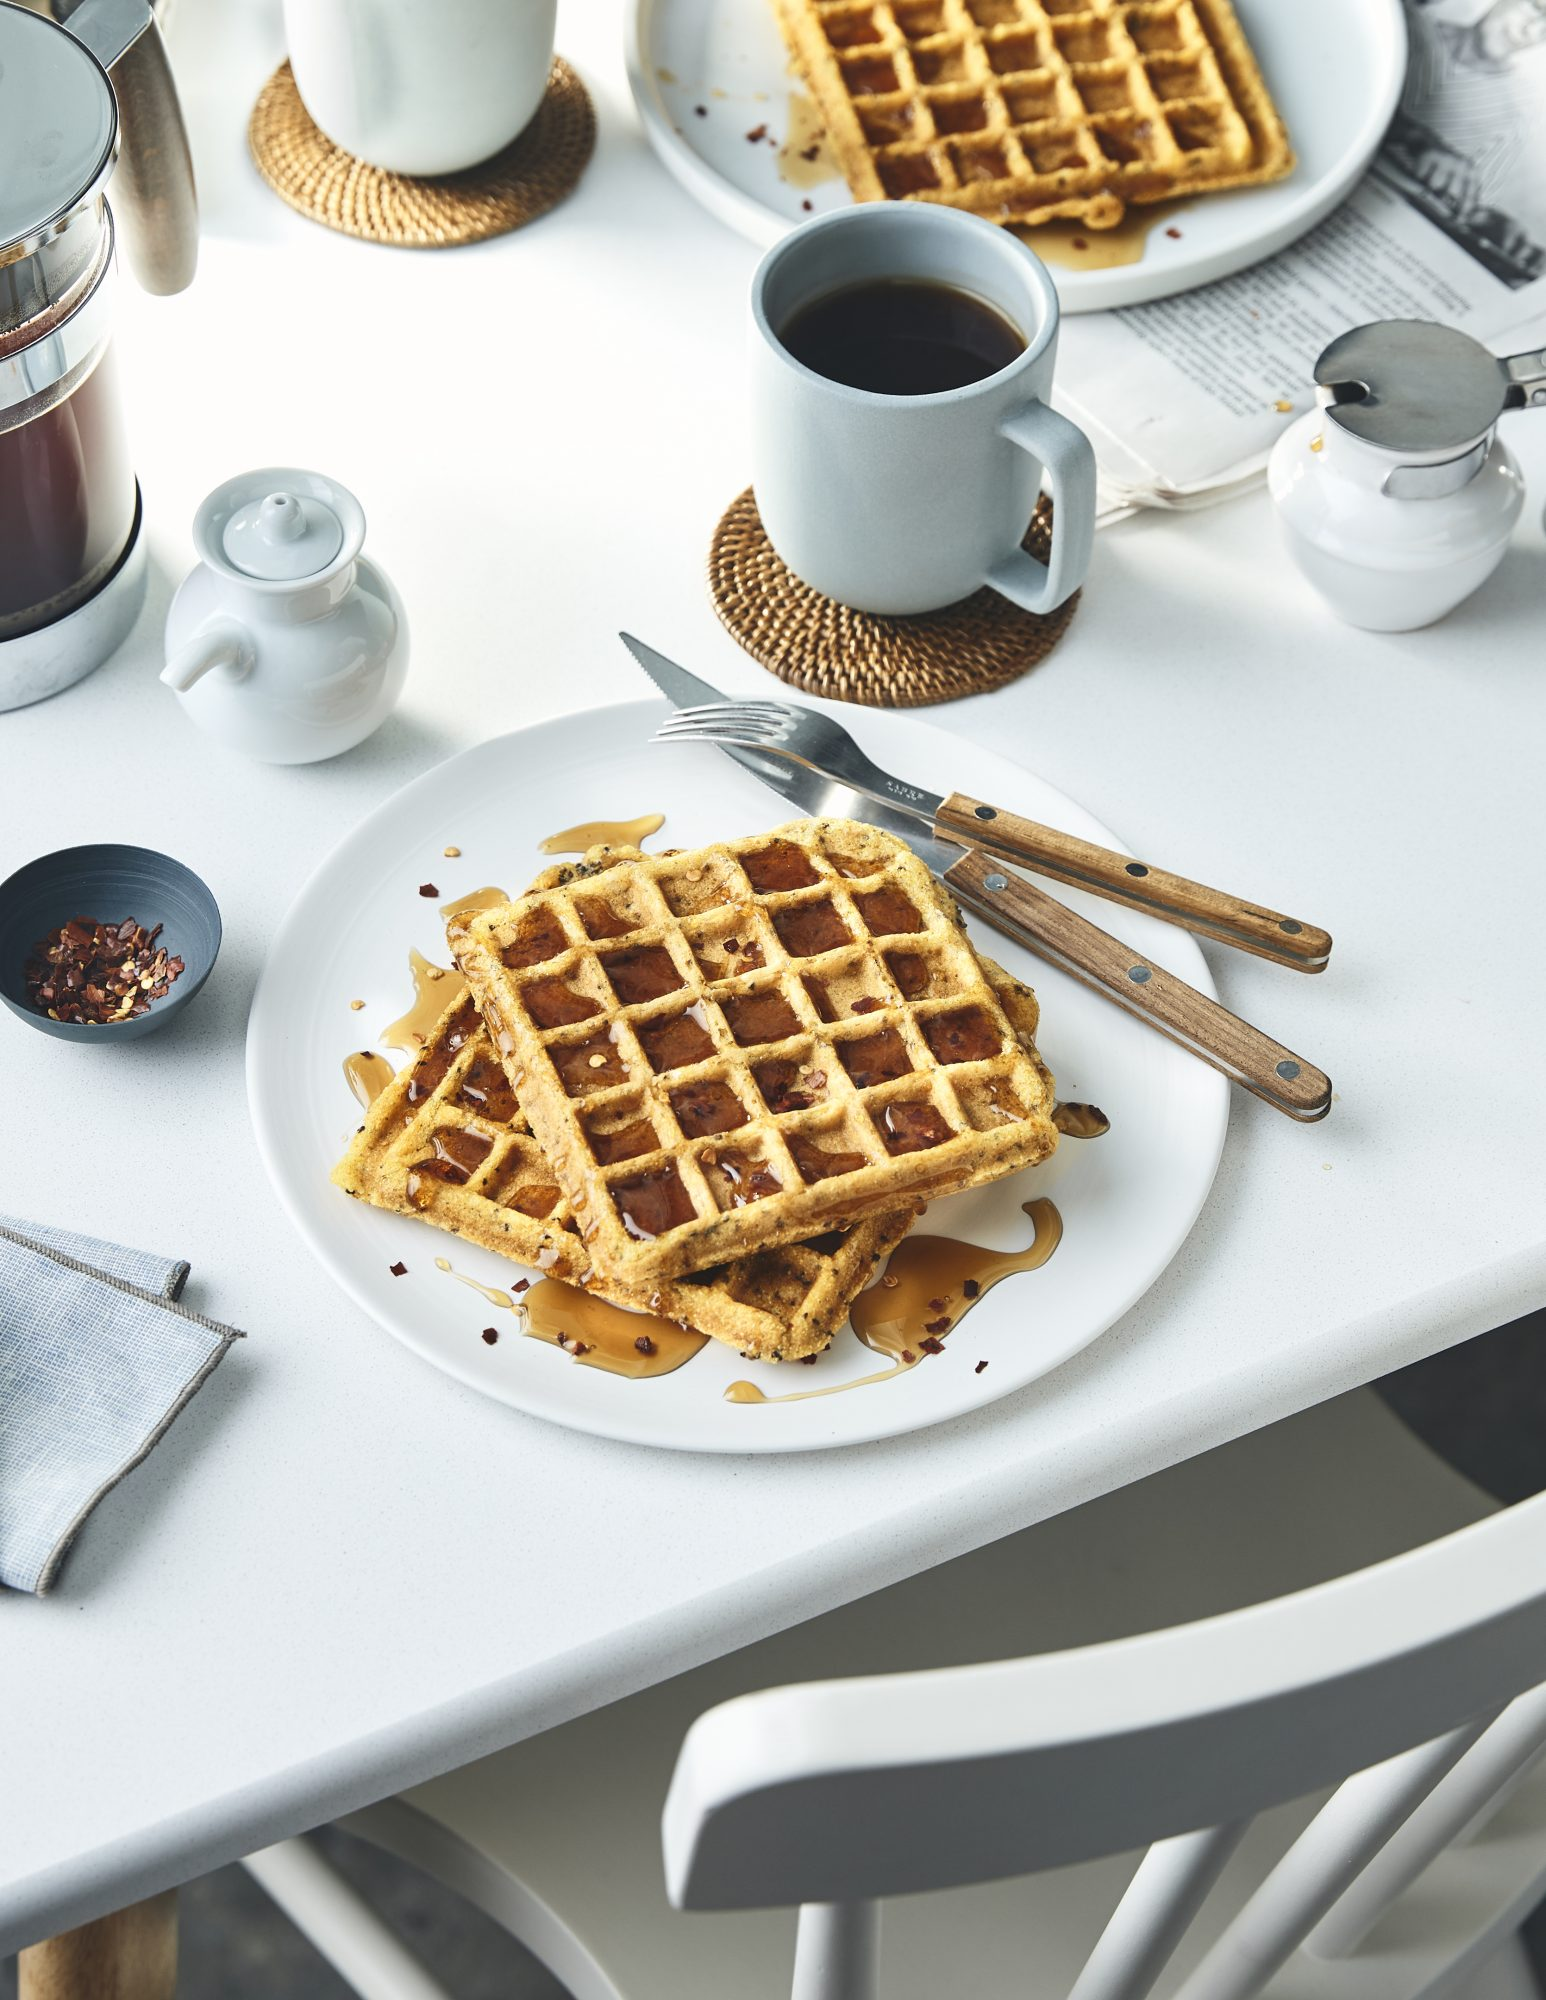 Savory Cornmeal-Chia Waffles With Spicy Maple Syrup (0119FOO)